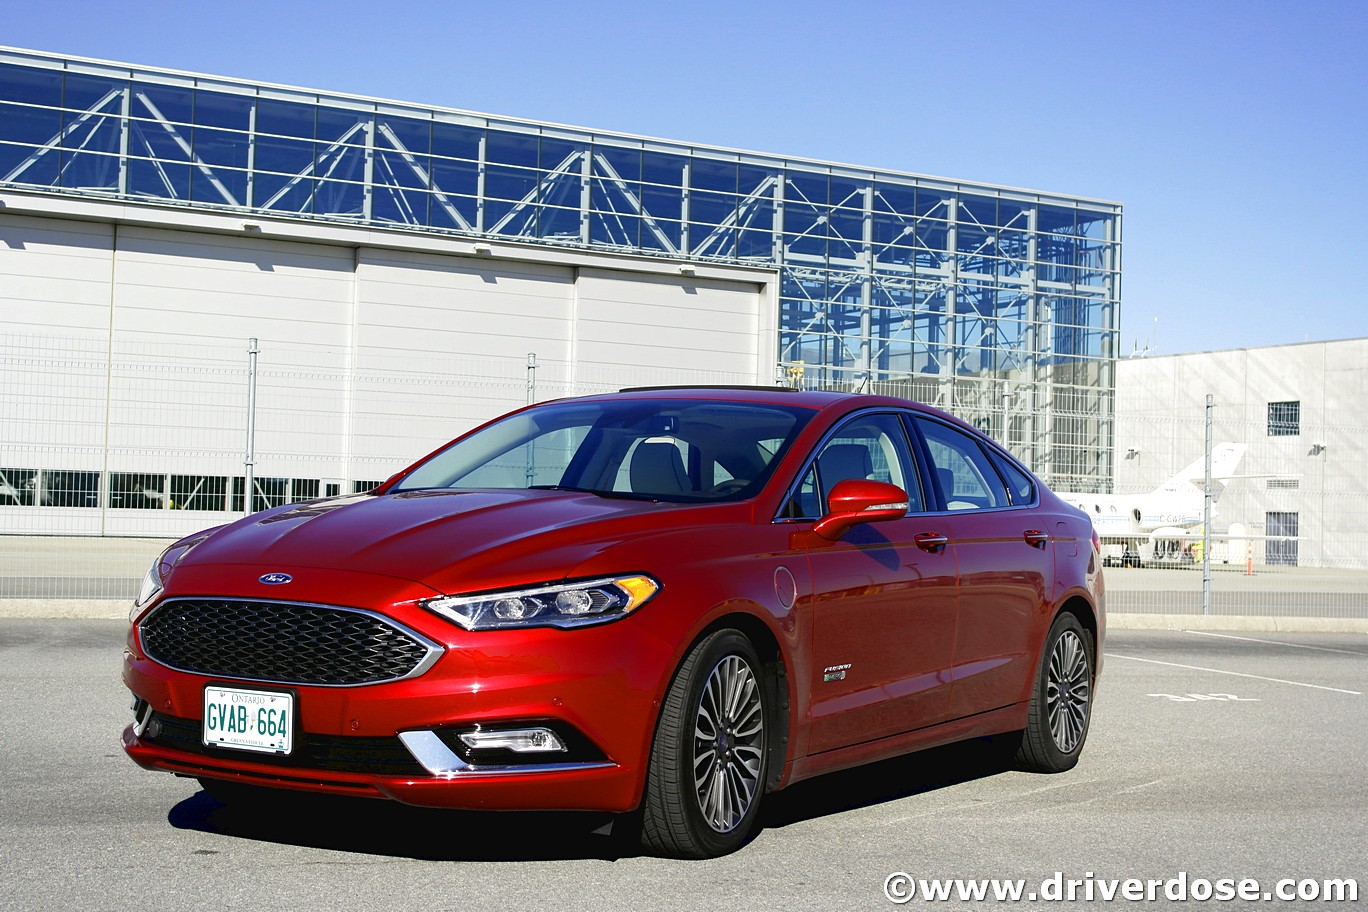 2017 ford fusion energi test drive review ratings specs driver dose. Black Bedroom Furniture Sets. Home Design Ideas